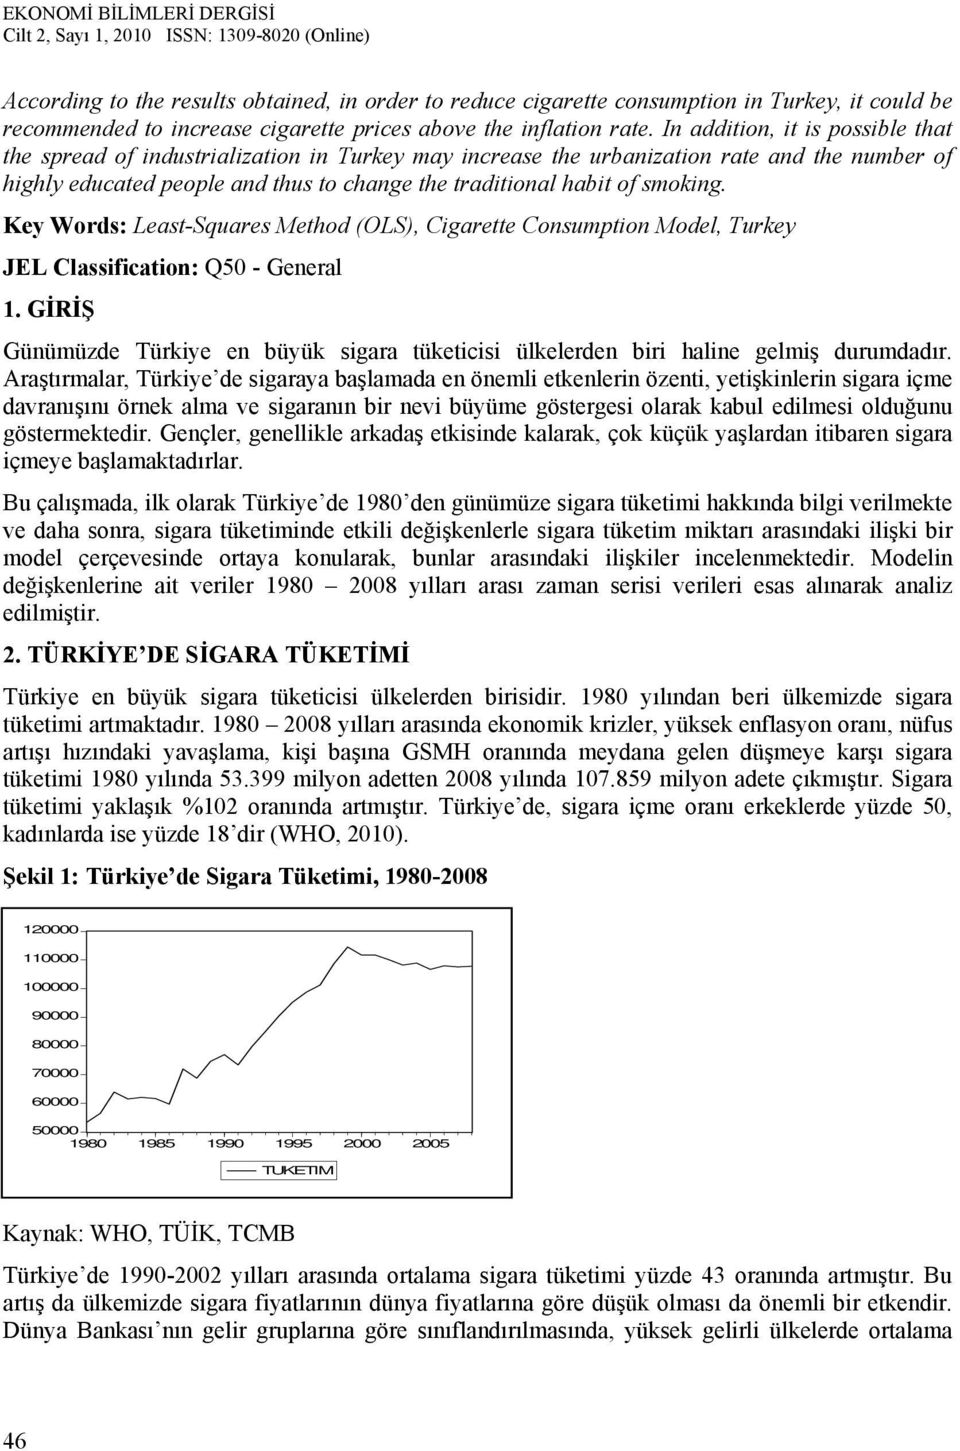 smoking. Key Words: Least-Squares Method (OLS), Cigarette Consumption Model, Turkey JEL Classification: Q50 - General 1.